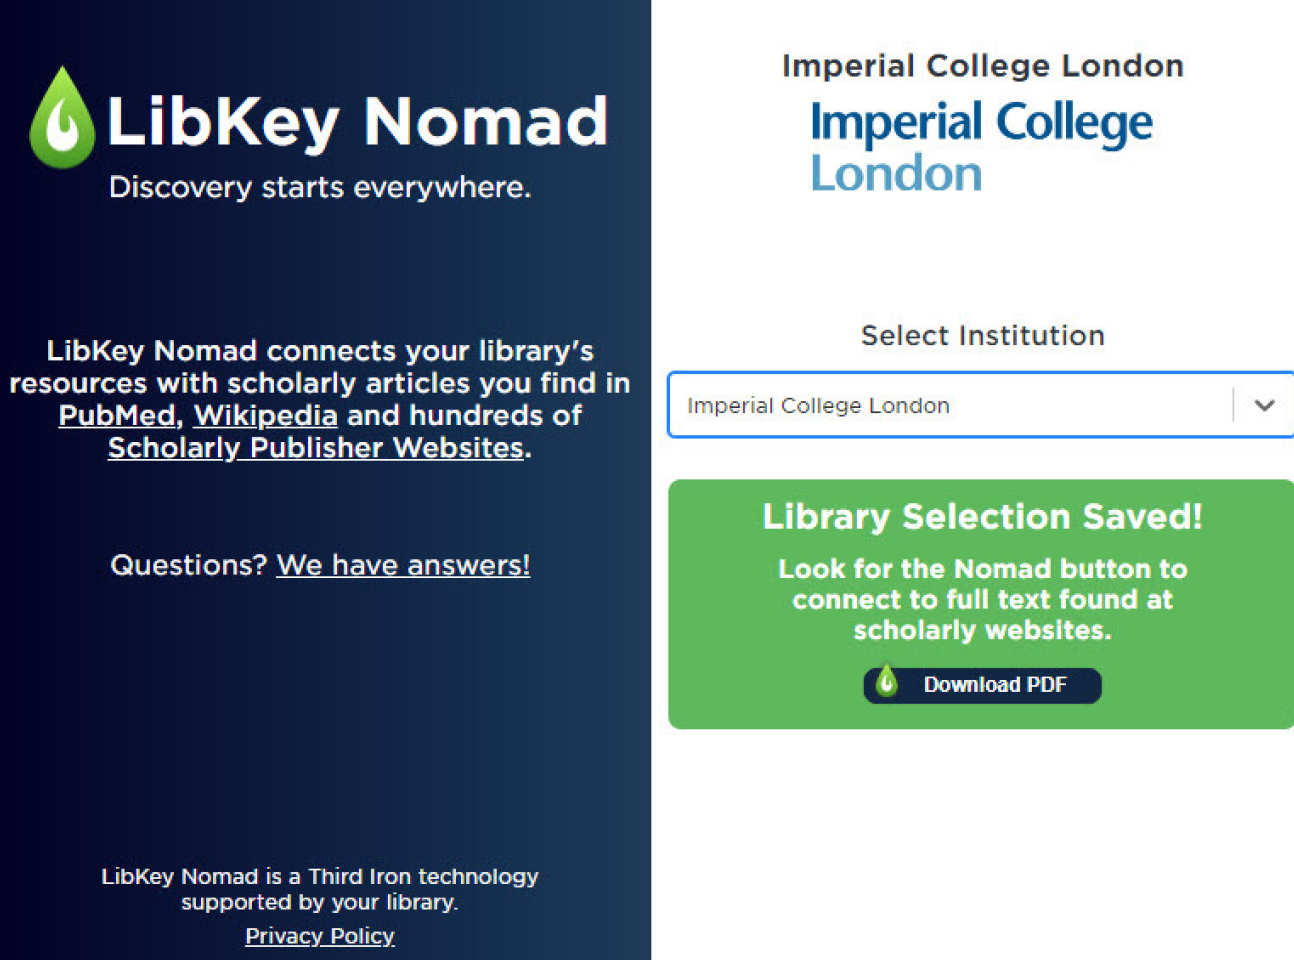 LibKey Nomad select institution screen image